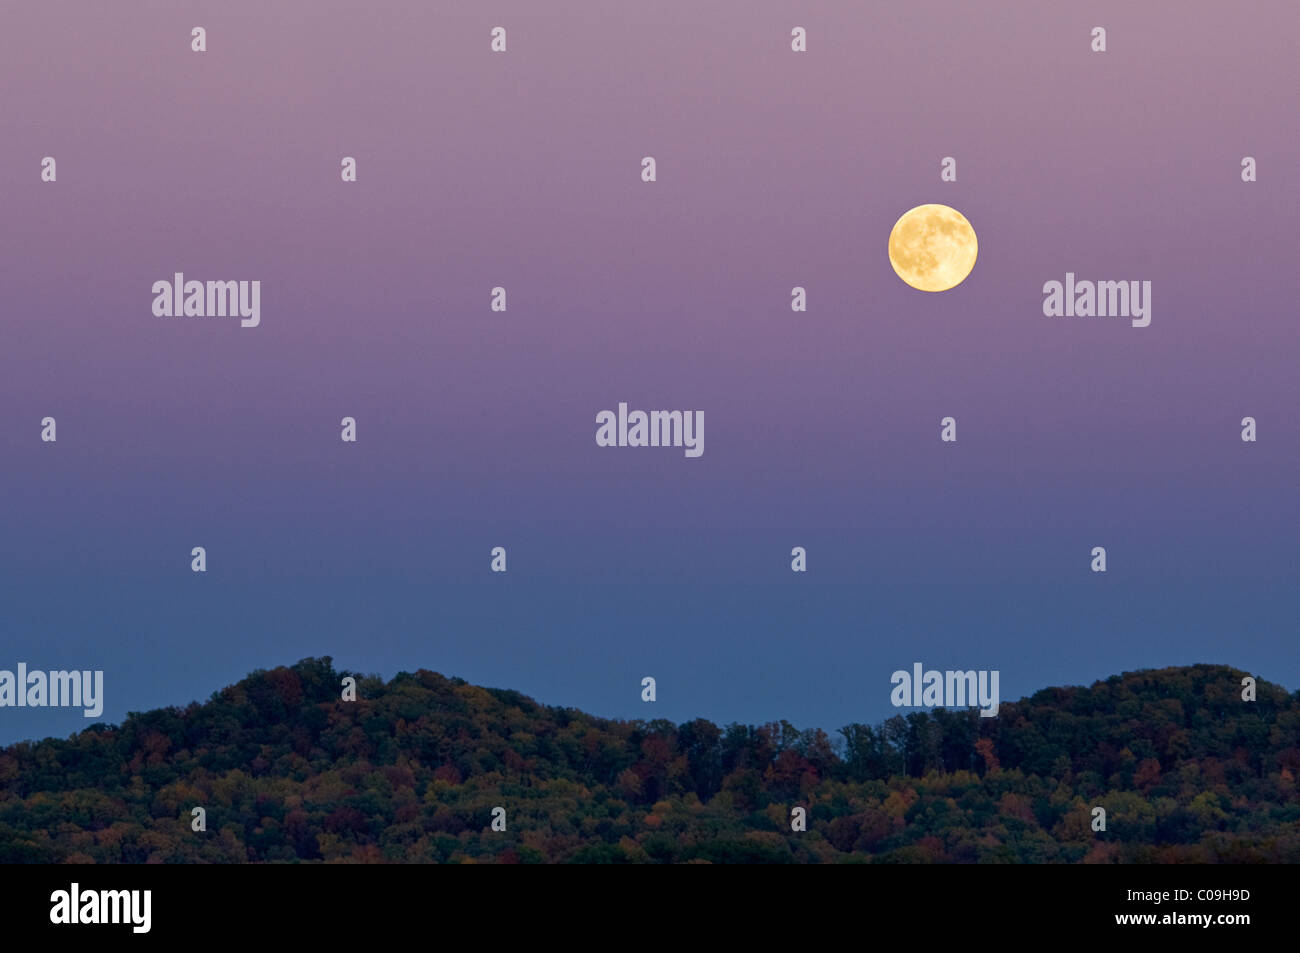 Moonrise Over Forested Hills in Daniel Boone National Forest in Whitley County, Kentucky - Stock Image